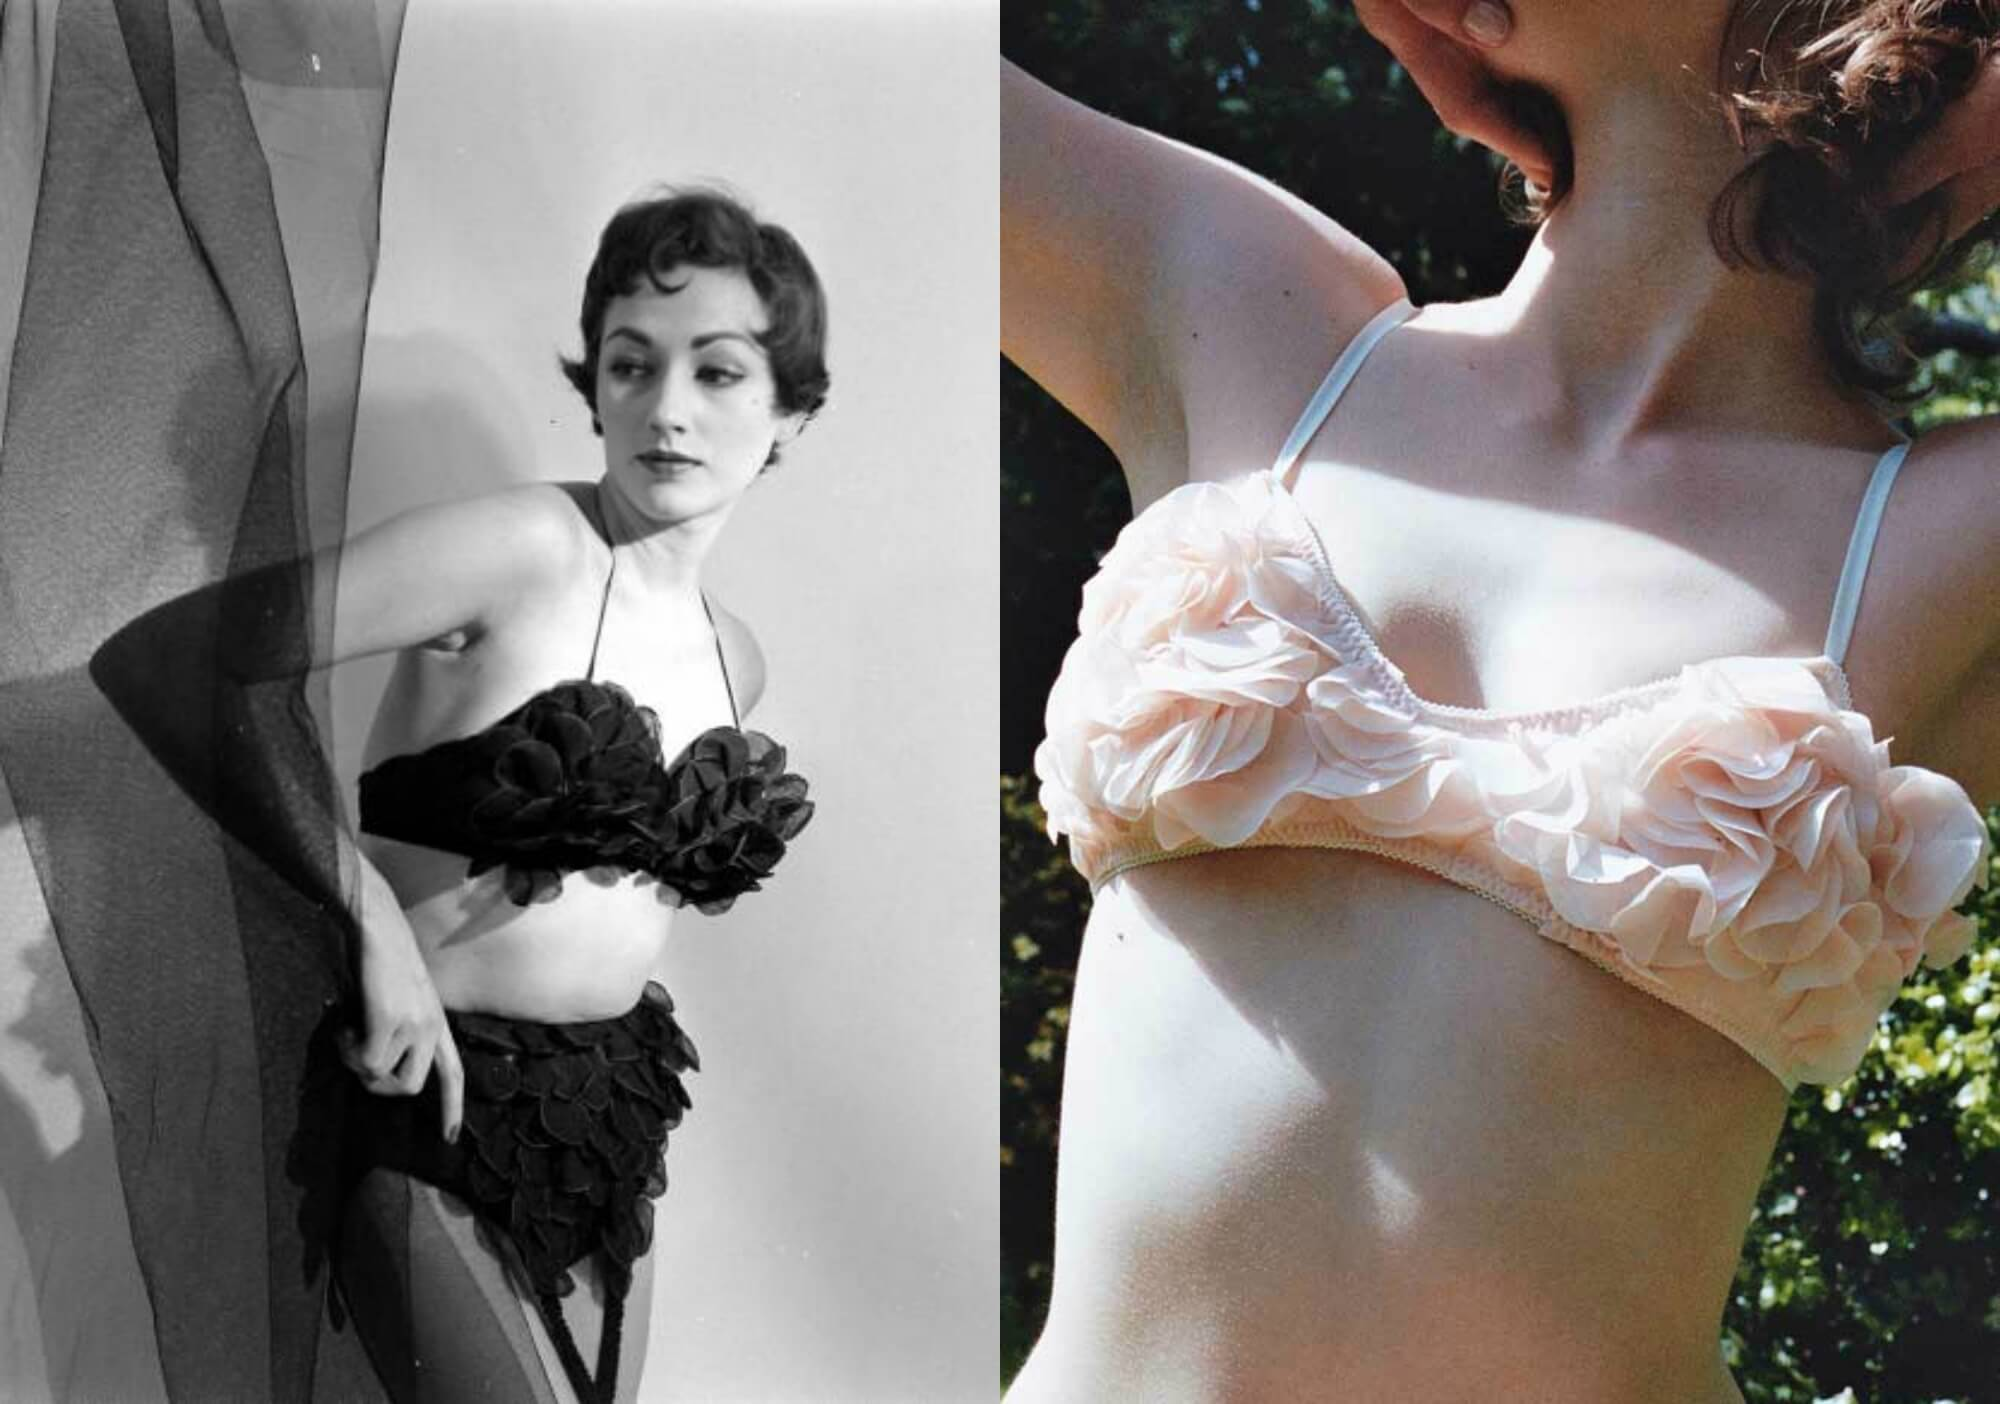 d915fce5d2cfb Vintage bra photographed by Nina Leen on left. Miss Crofton  Blush  bra on